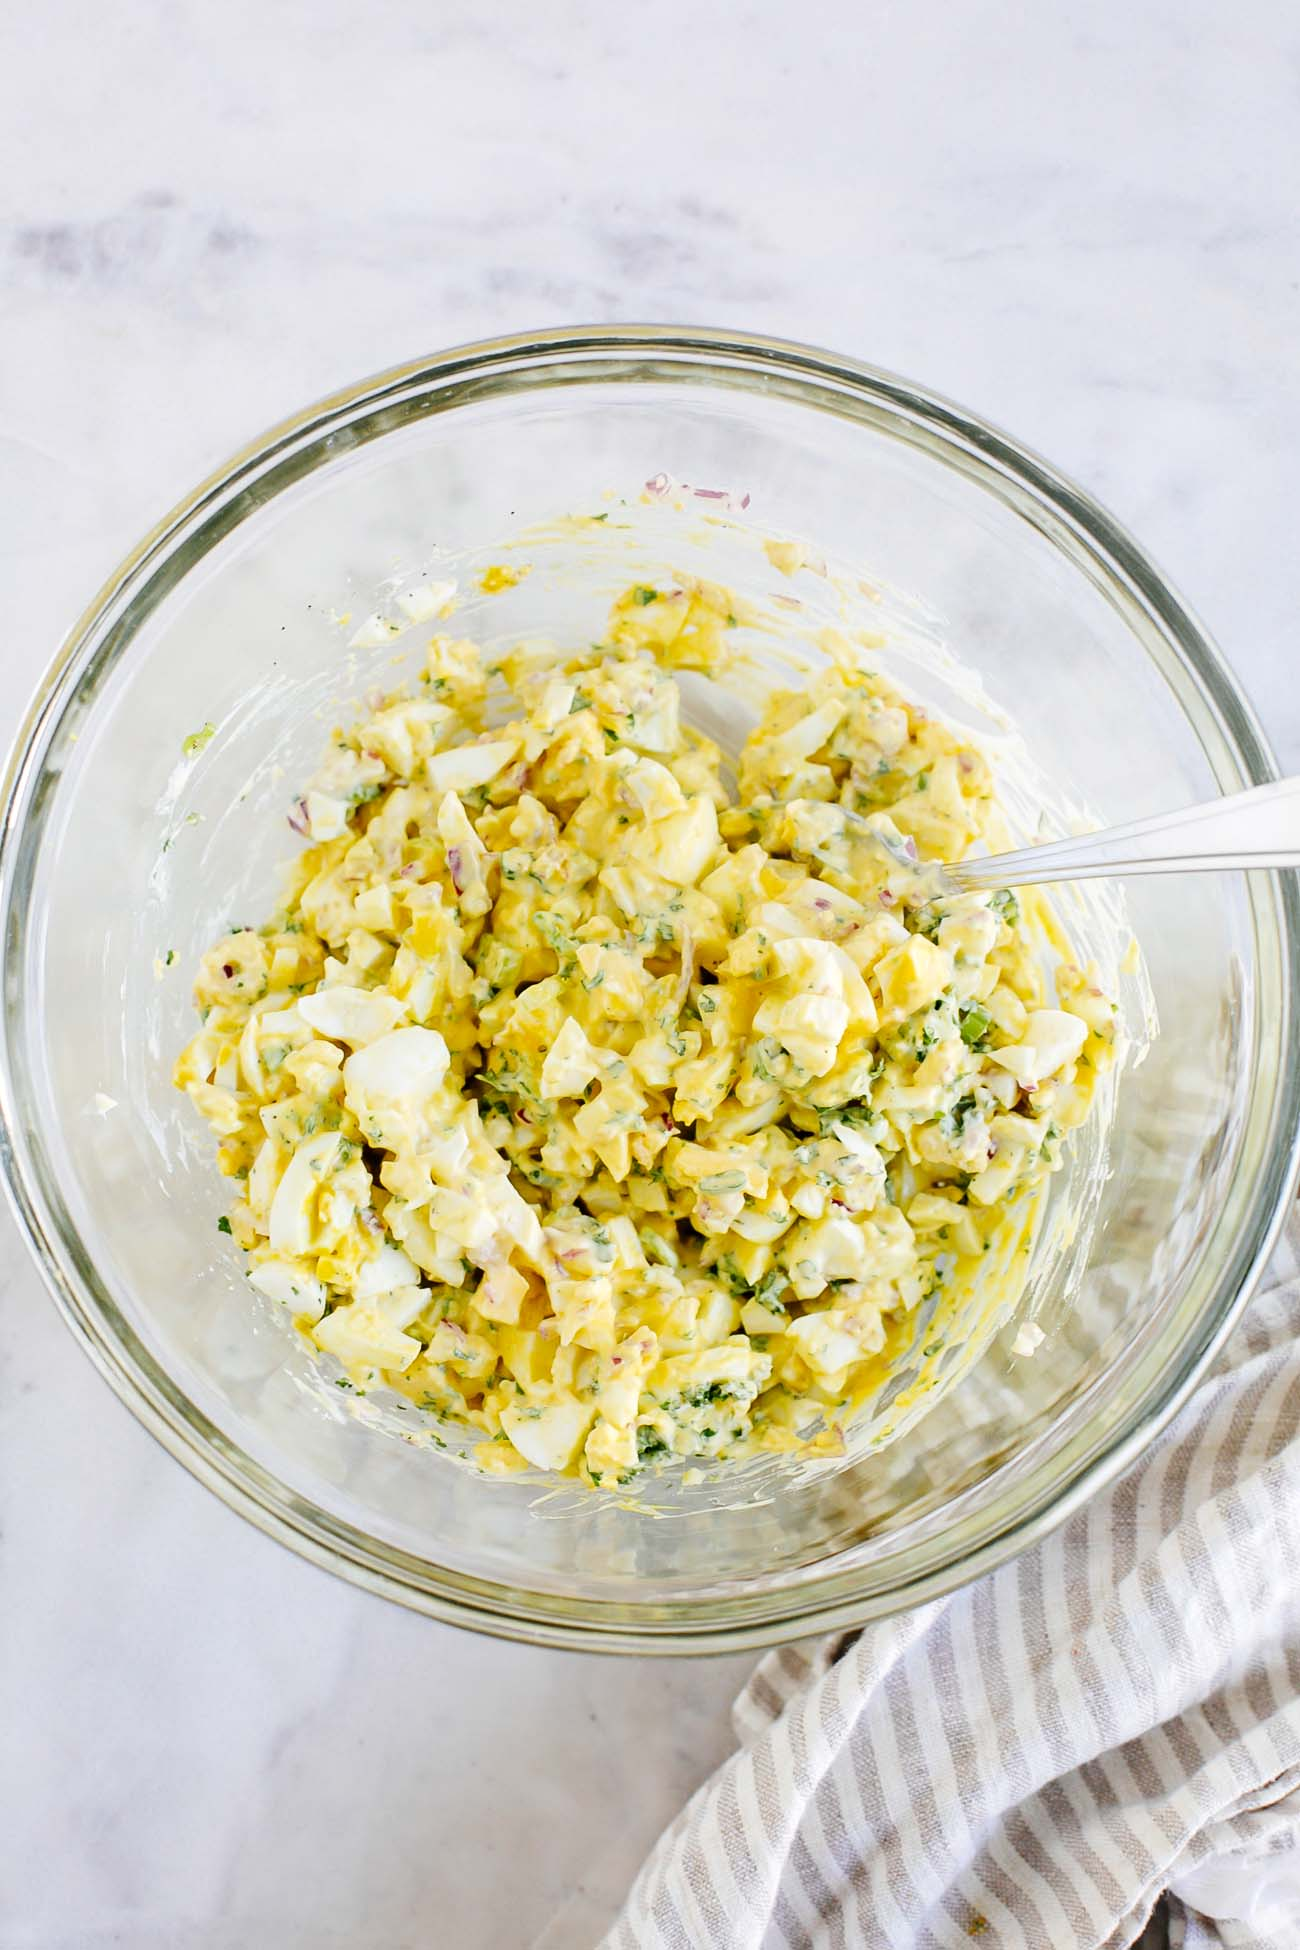 Egg salad being mixed in a bowl.